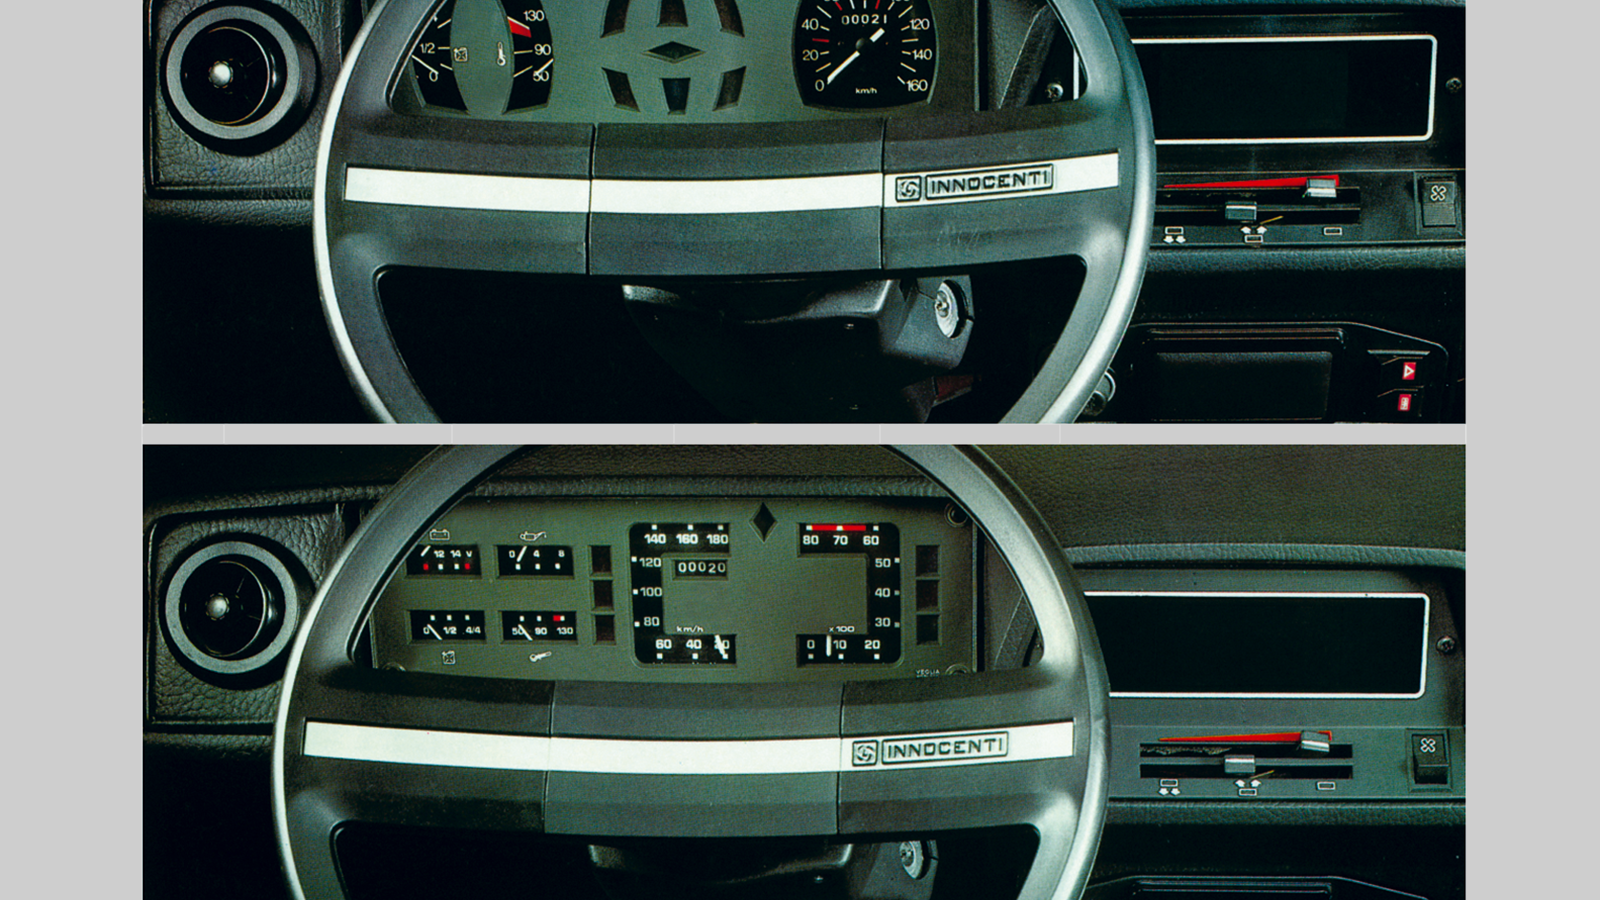 14 classic dashboards you'd never see in a modern car